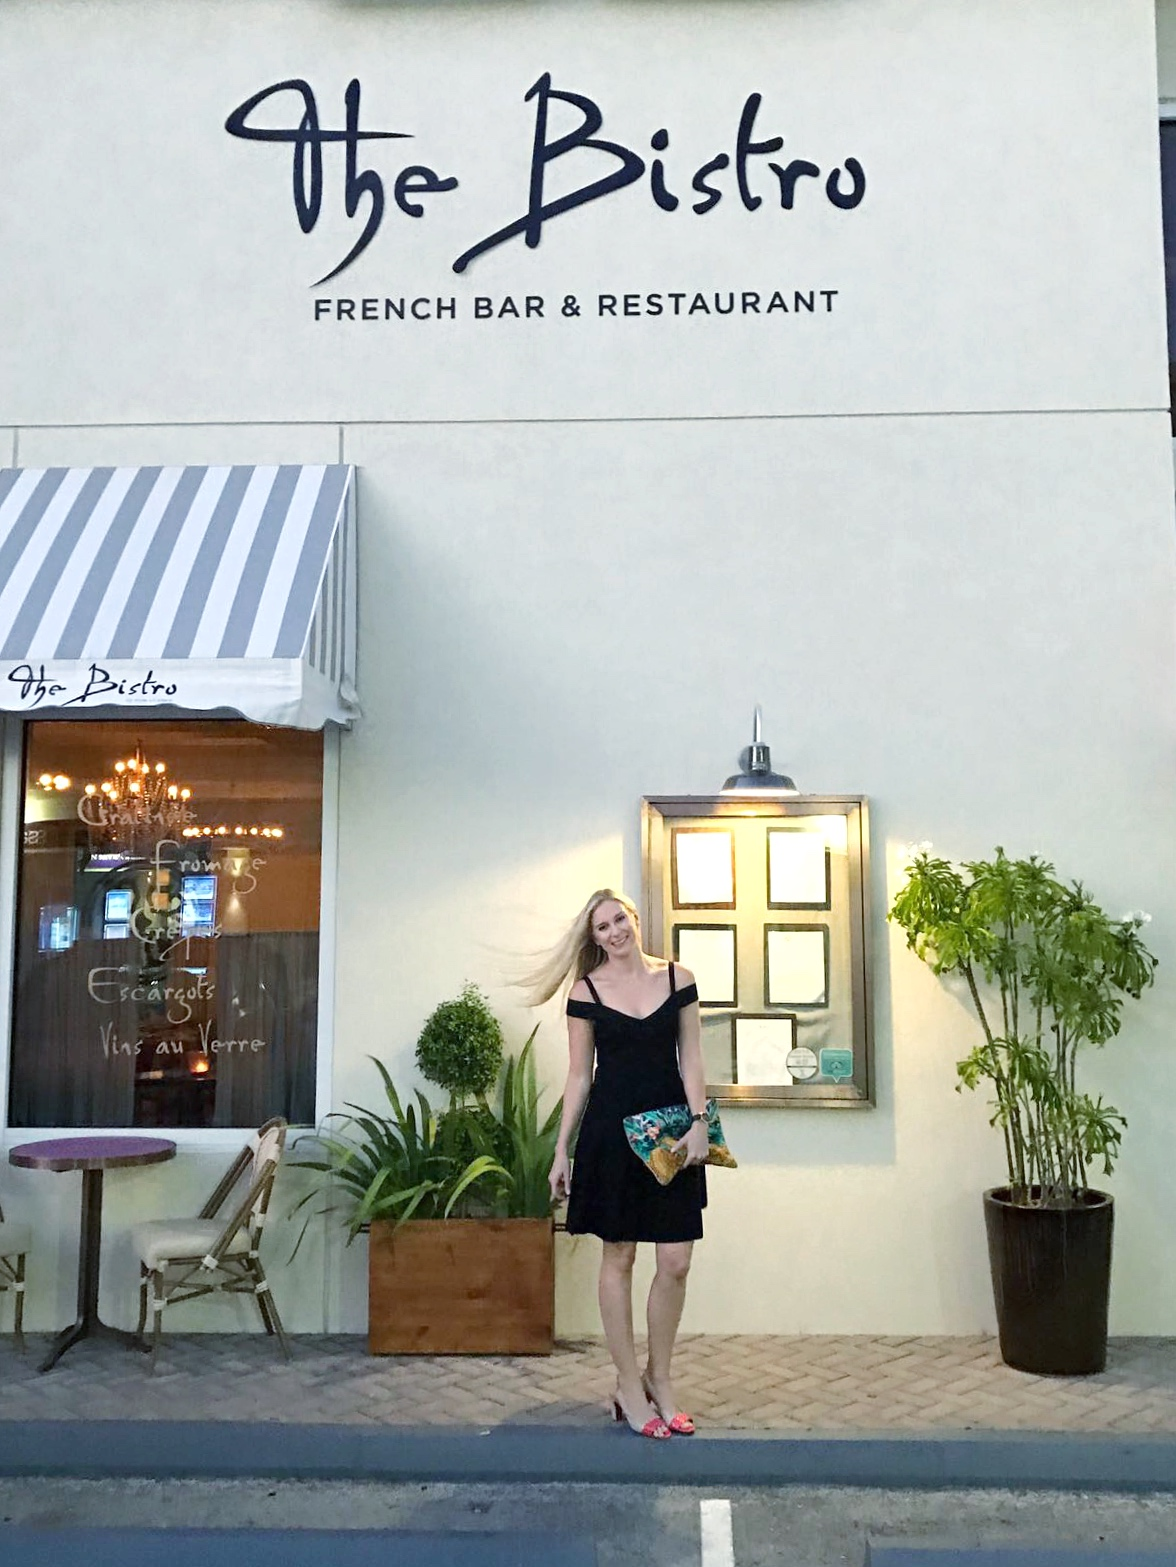 Dining at The Bistro. Dress - Milly (Carey's Karma Closet), Bag - Camilla, Shoes - DSW , Watch - Larsson & Jennings